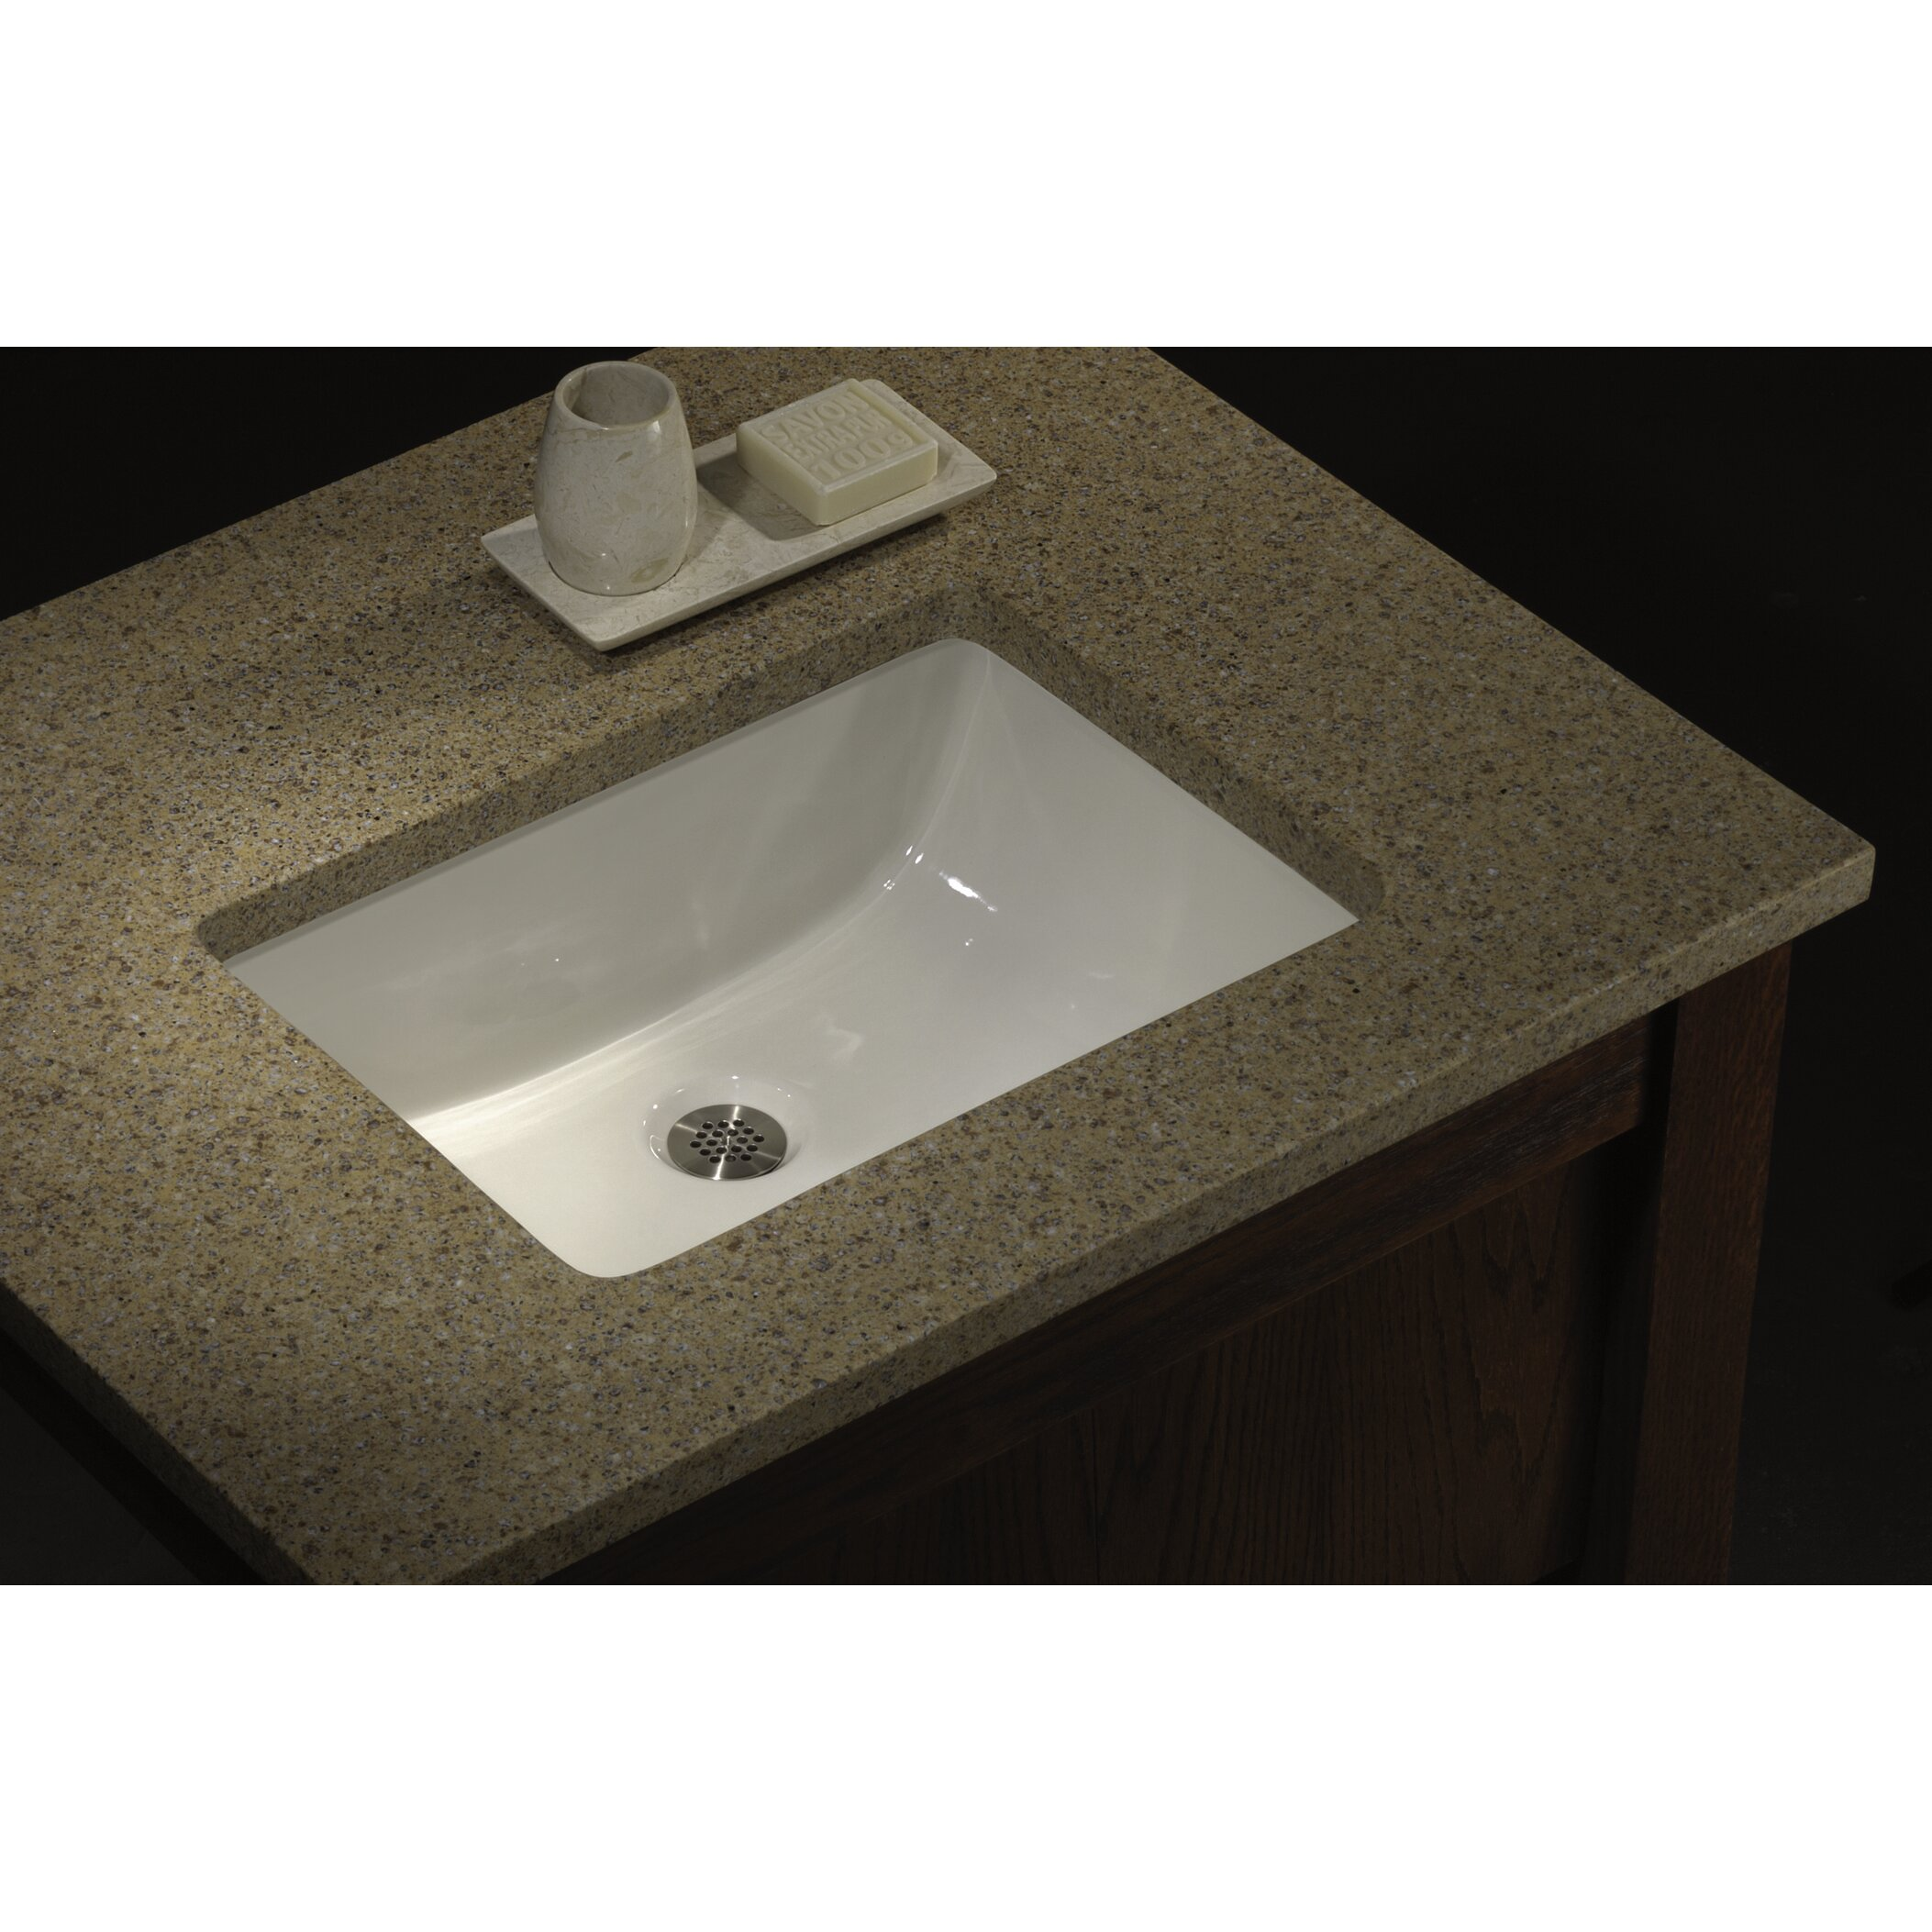 porcelain undermount sinks bathroom lenova porcelain undermount bathroom sink wayfair 20040